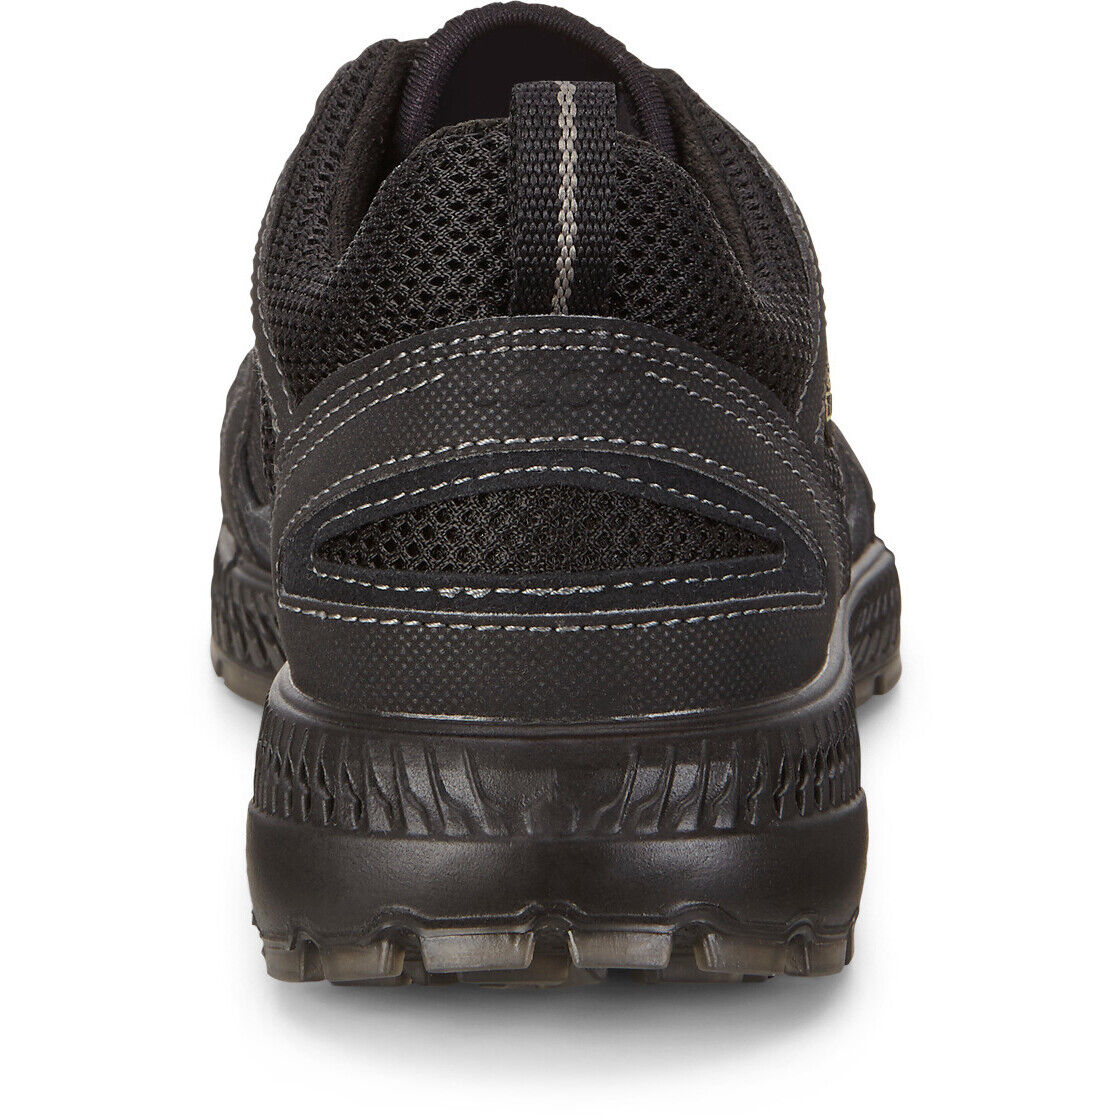 ECCO Terracruise II Schuhe Damen blacktitanium